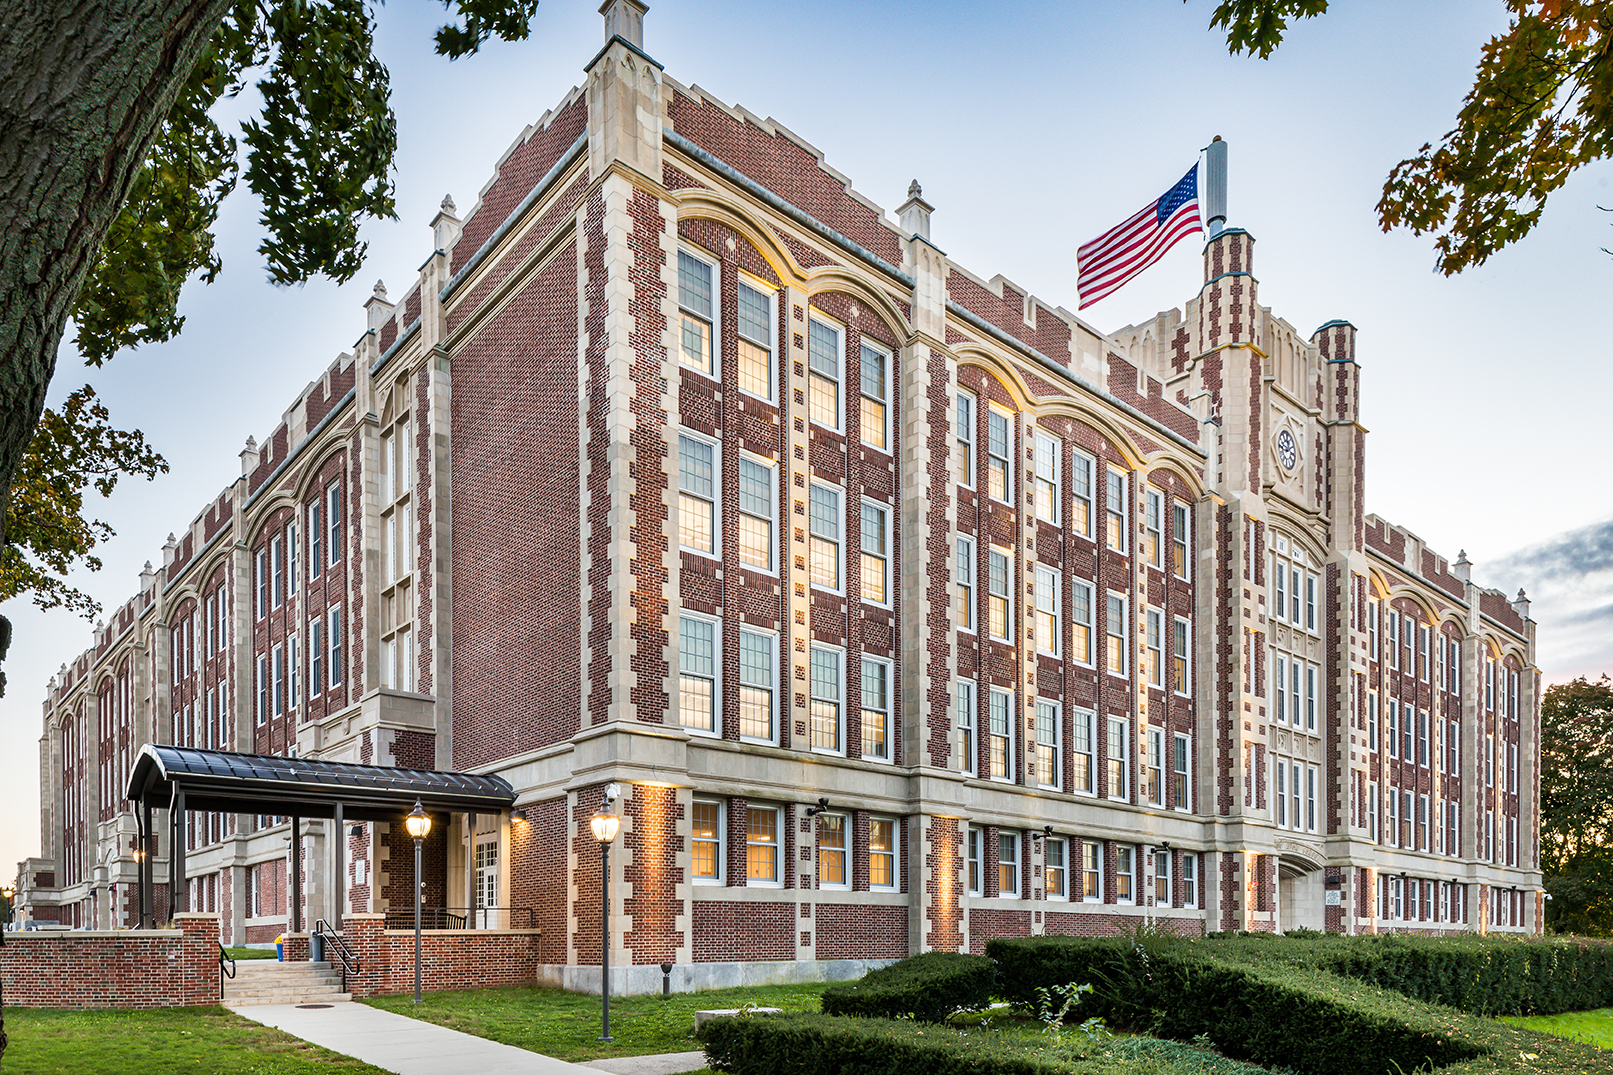 Copy of 1st Sgt Dupont Middle School